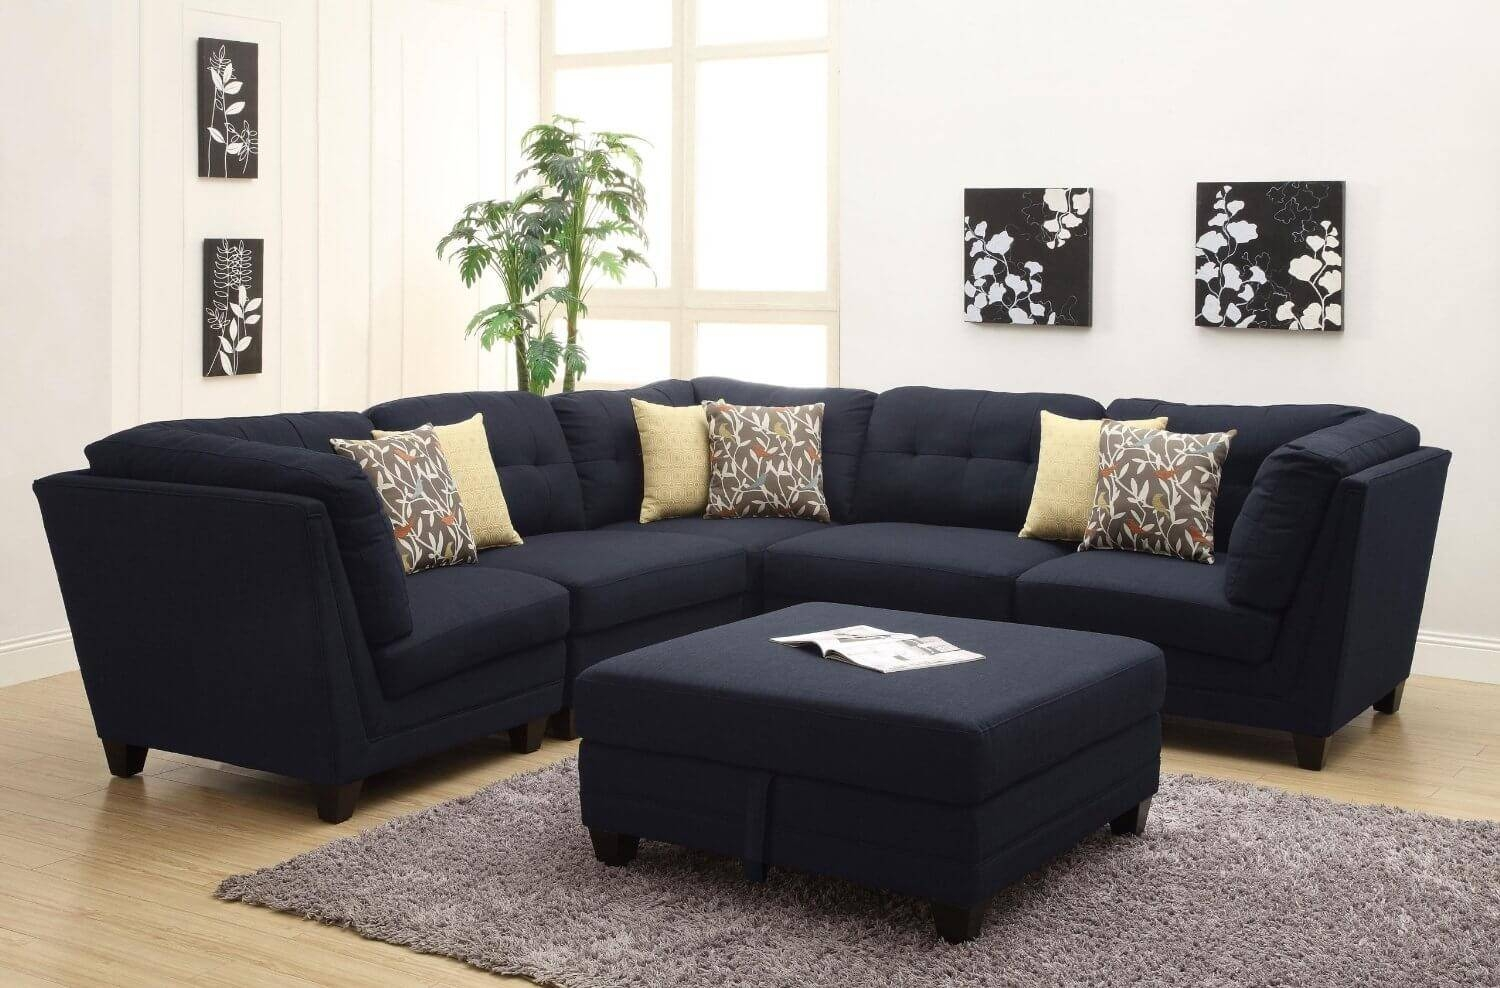 100 Beautiful Sectional Sofas Under $1,000 throughout Wide Sectional Sofa (Image 2 of 25)